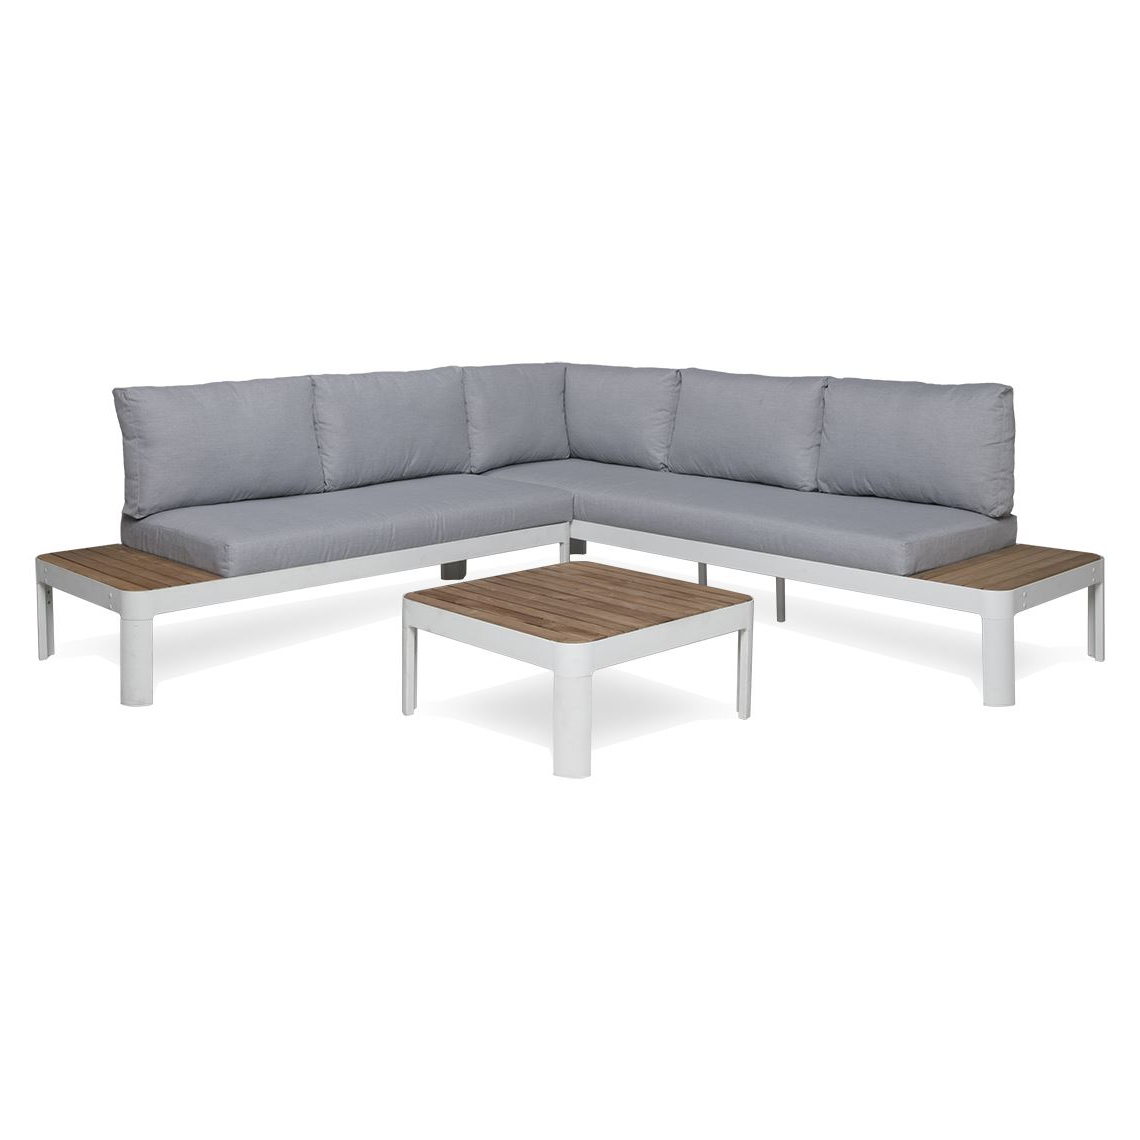 Adelphi 3 Piece Aluminium Outdoor Lounge Set, White Regarding Well Known Olinda 4 Piece Teak Sectionals Seating Group With Cushions (View 20 of 25)